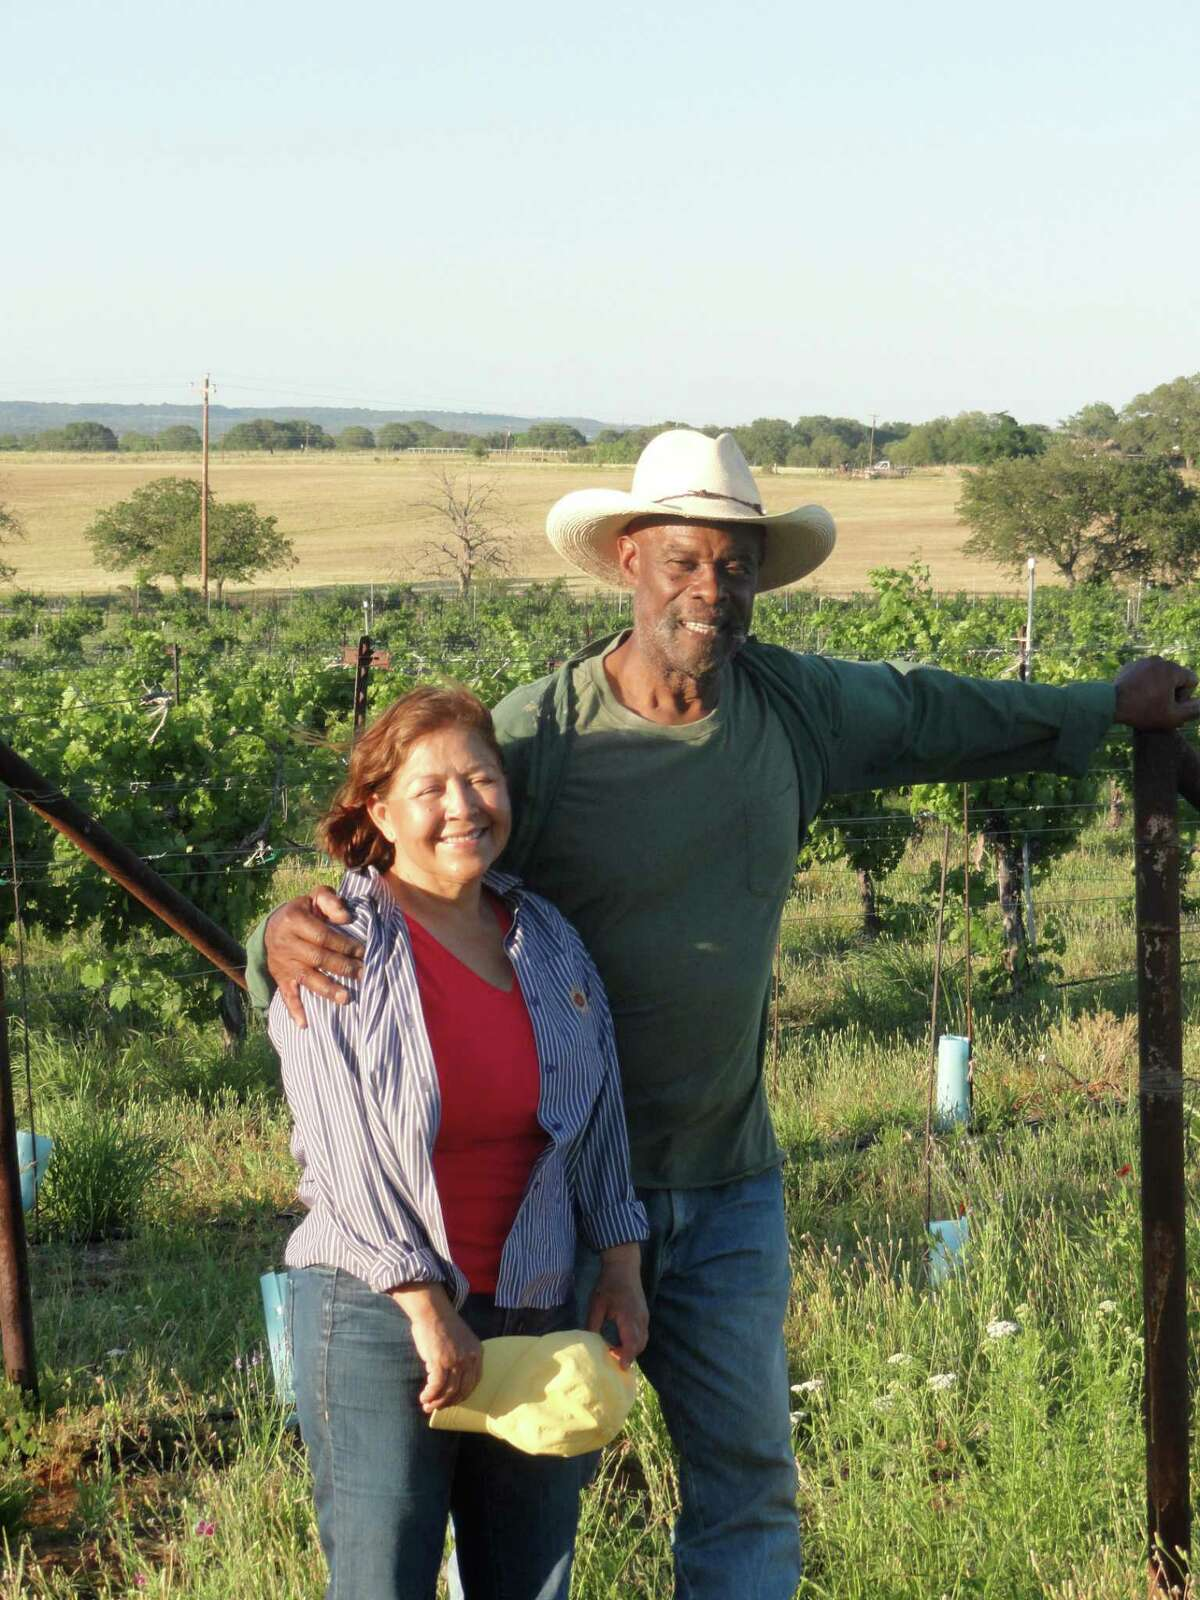 Alfonse Dotson and Martha Cervantes Dotson own Certenberg Vineyards near Voca, Texas in the Hill Country. Dotson was once a professional football player, but has become a vineyard owner in the Hill Country.